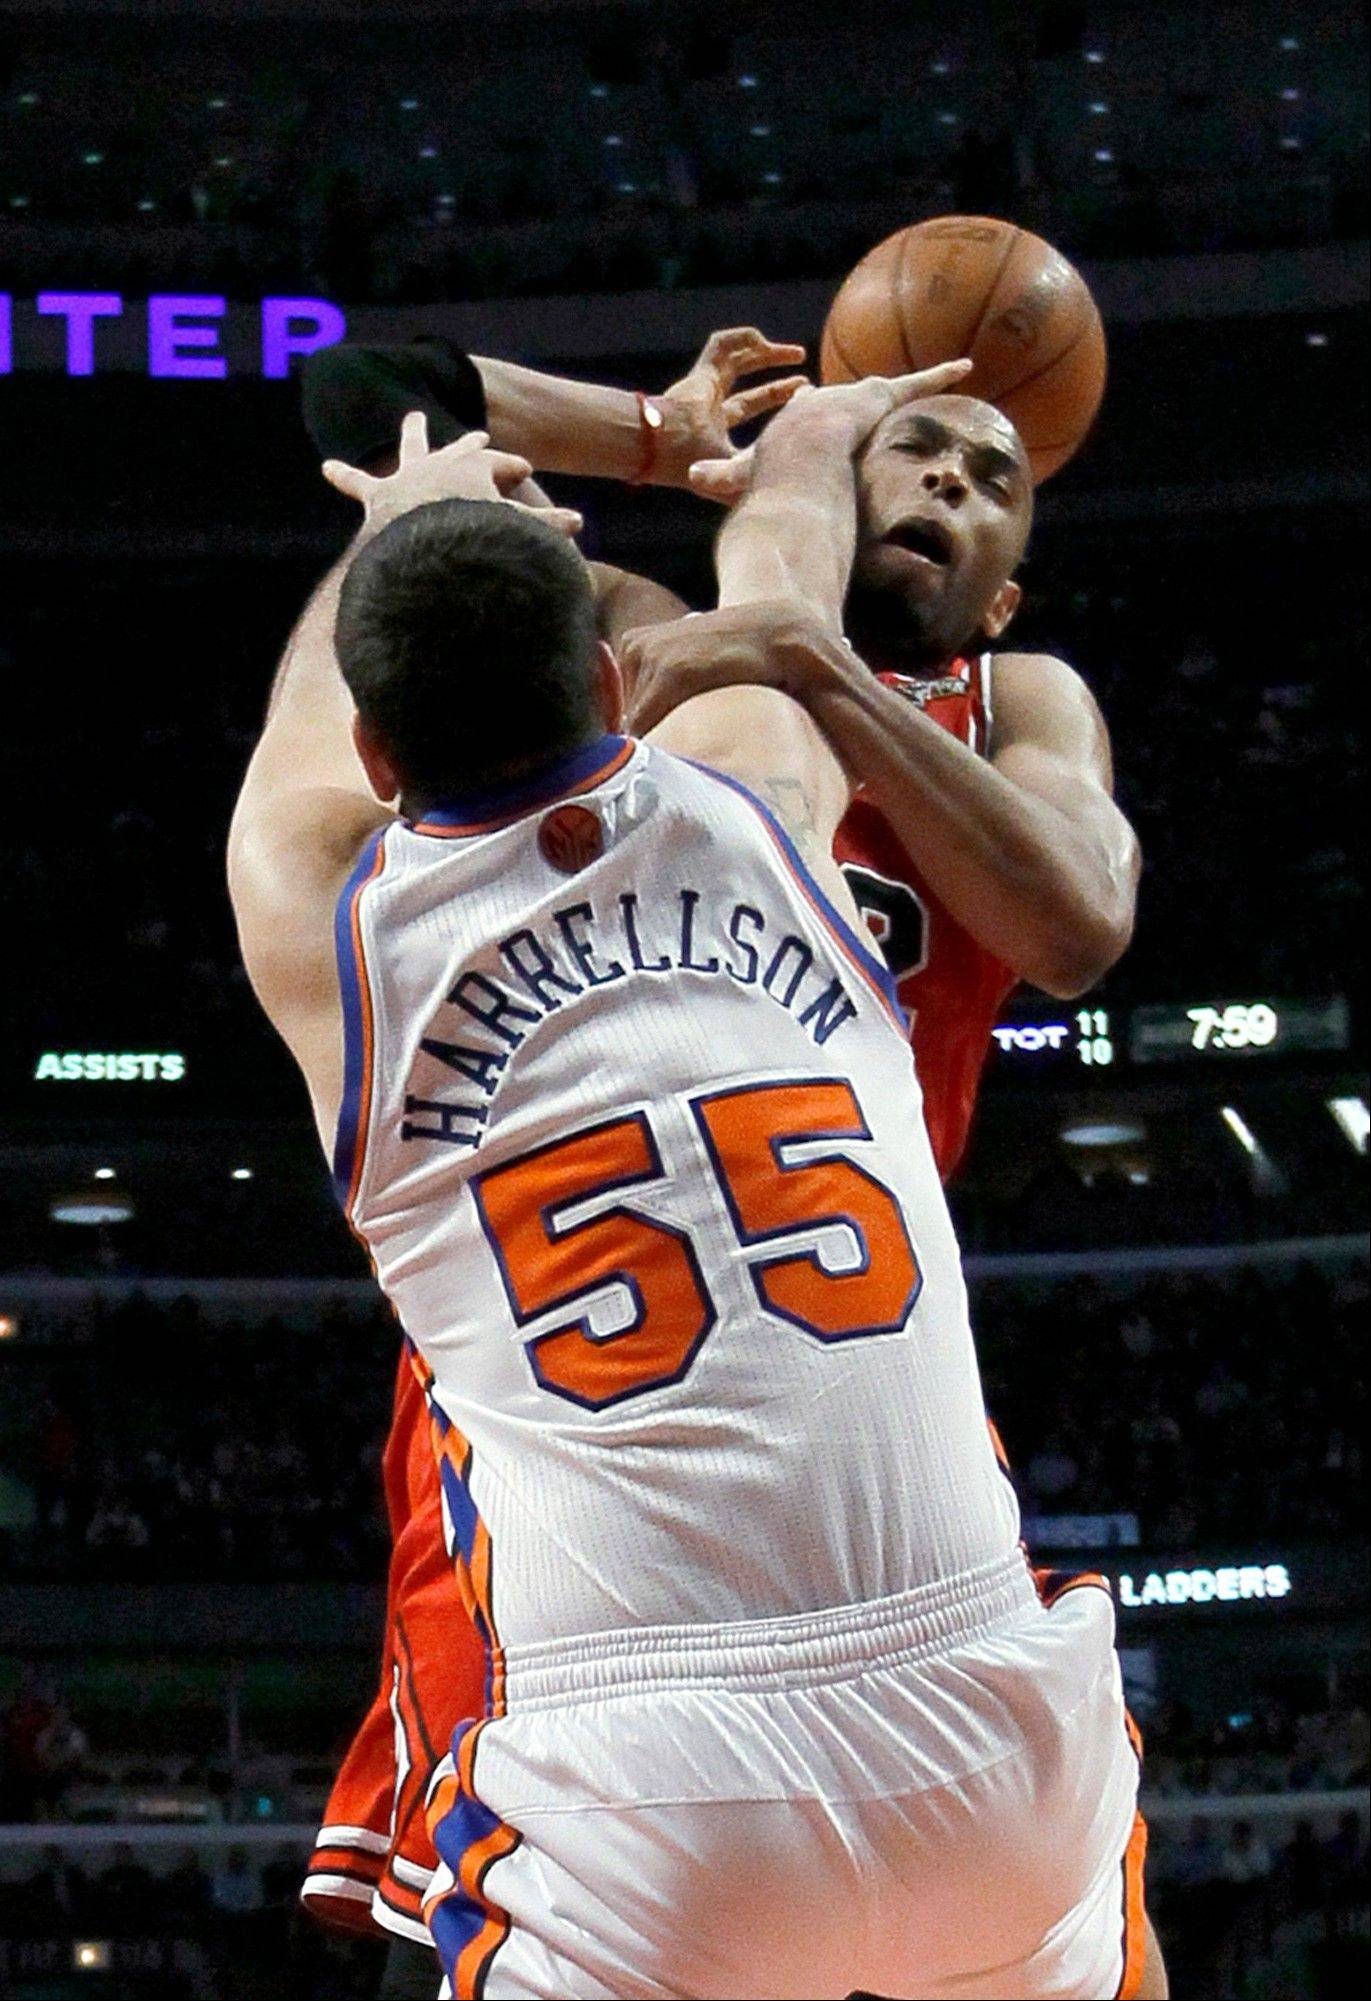 New York Knicks forward Josh Harrellson (55) fouls Chicago Bulls forward Taj Gibson during the first half of a game Monday in Chicago.